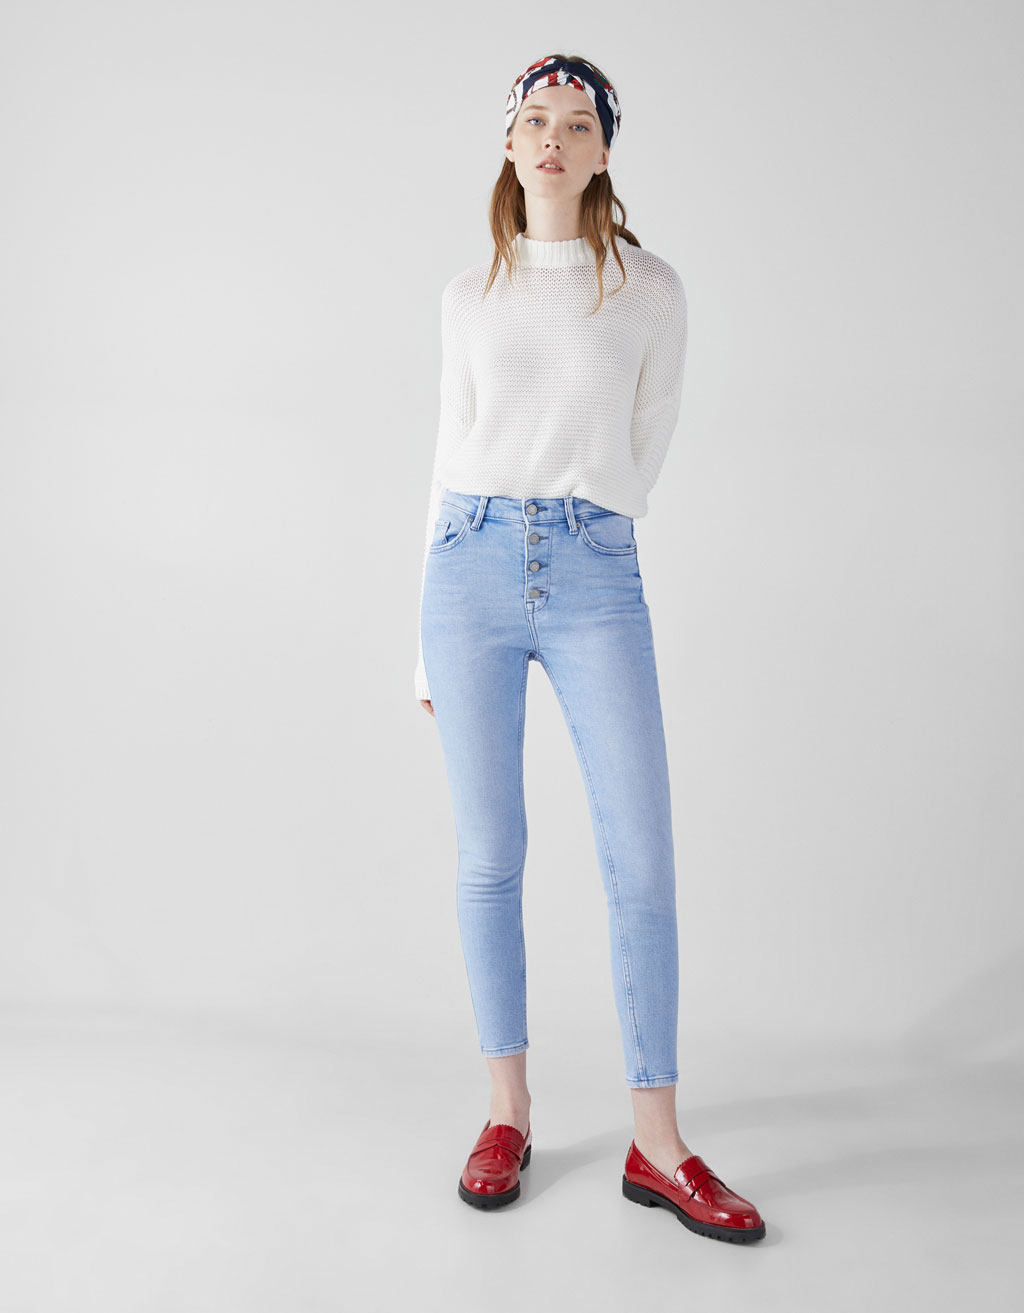 Join Life High Waist Skinny Fit Jeans